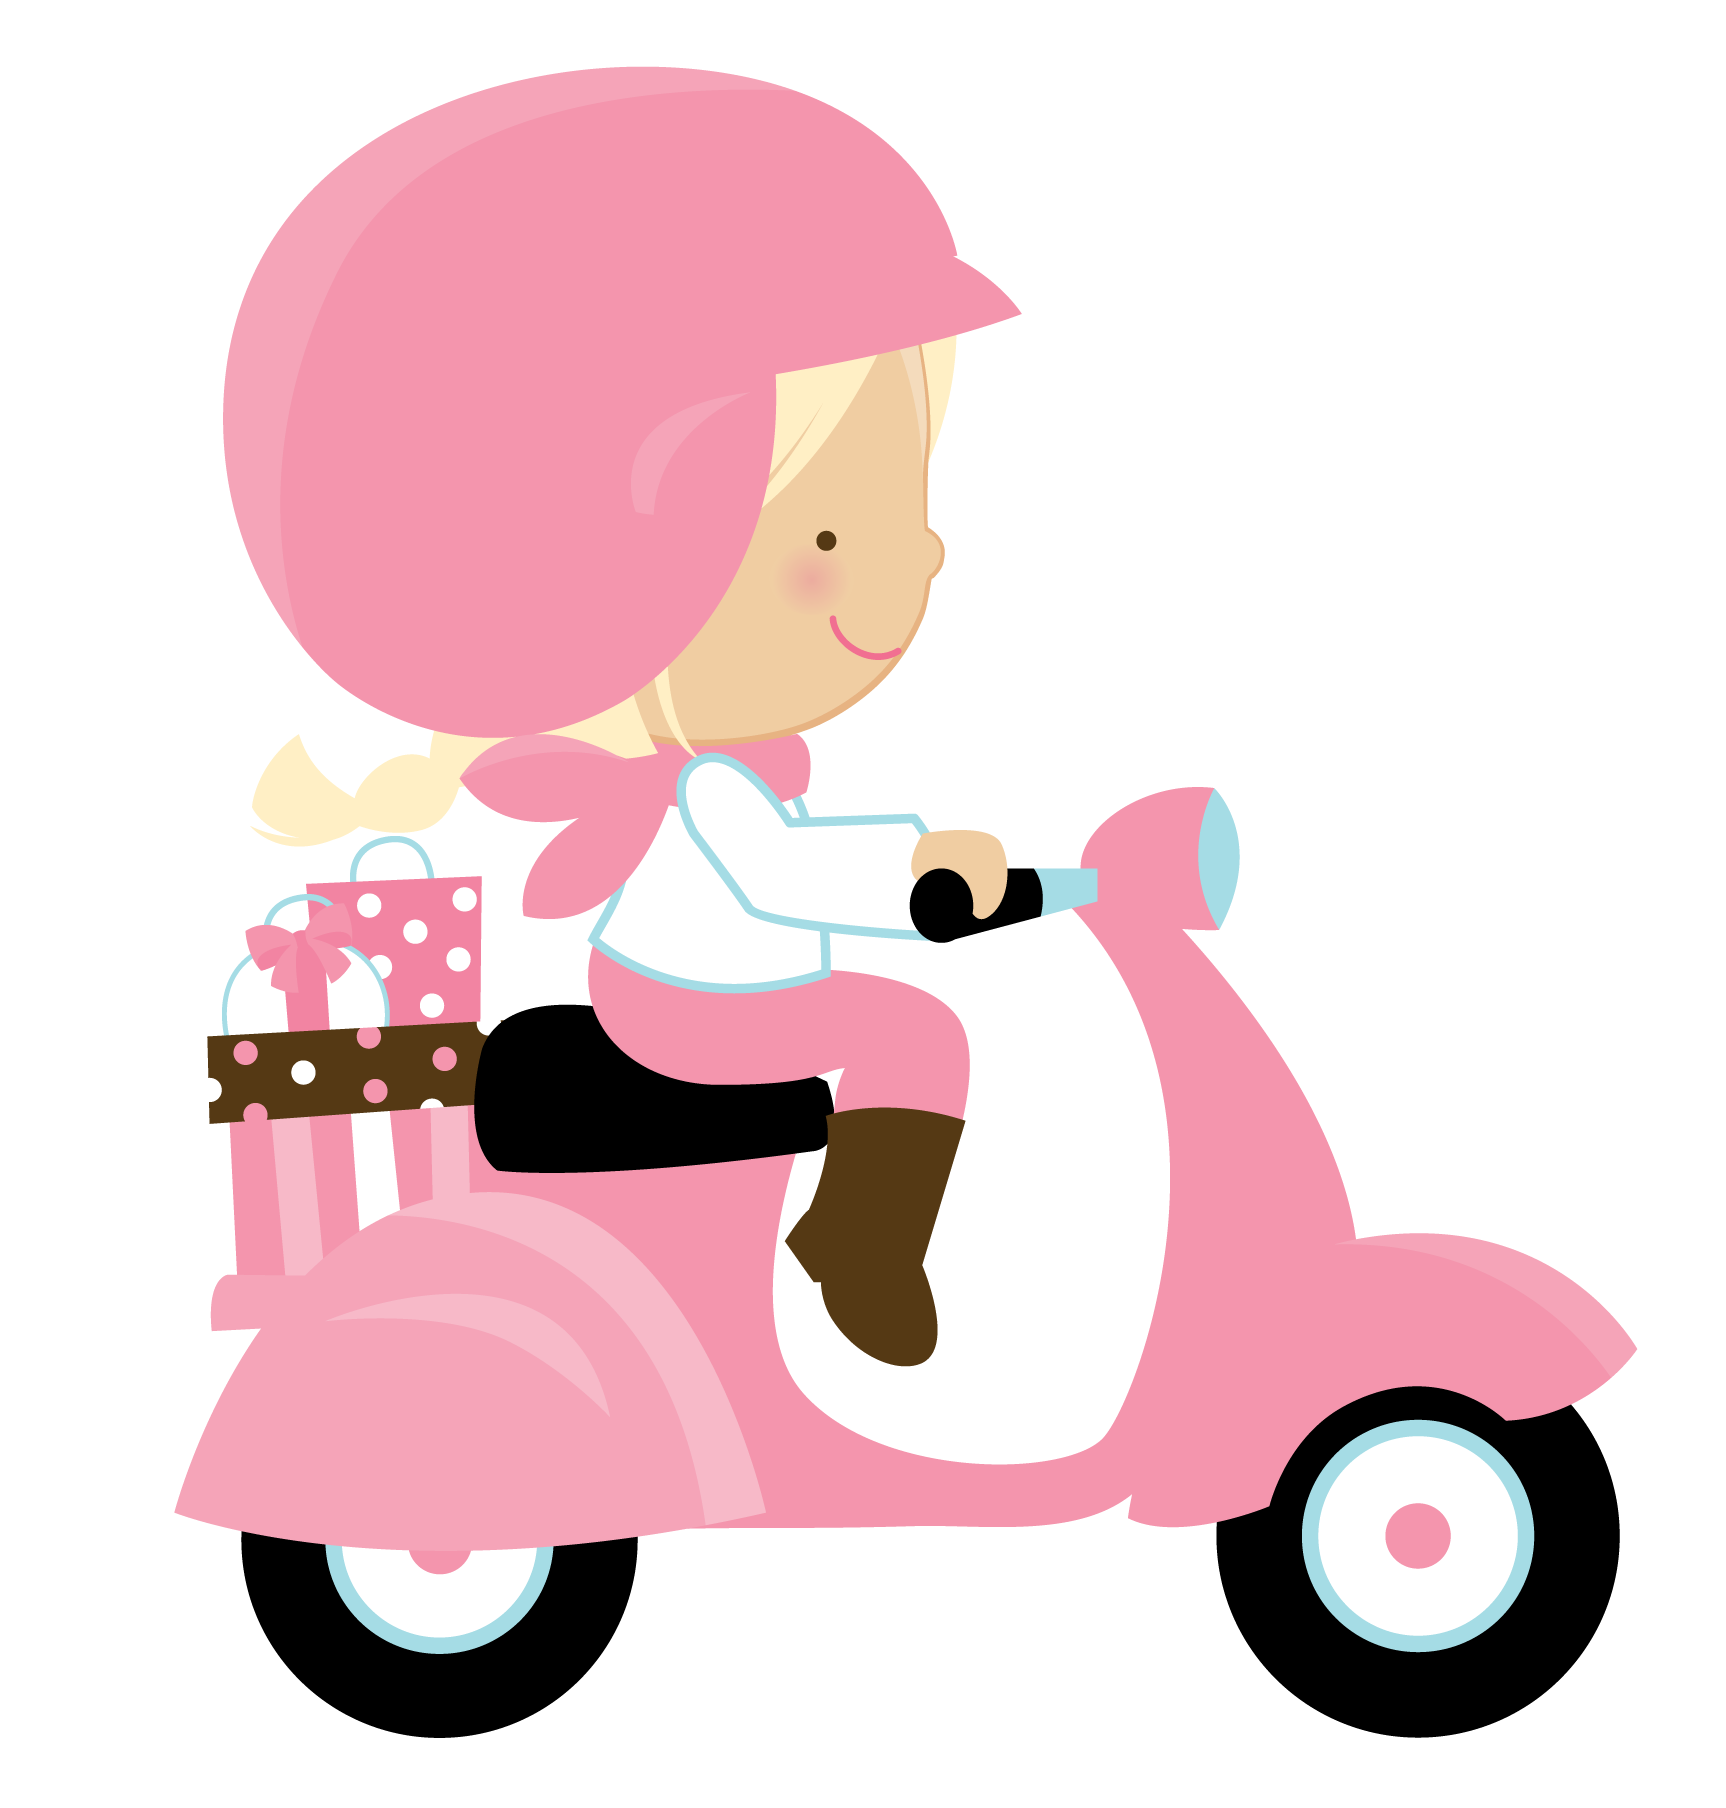 Scooter clipart pink scooter. X dumielauxepices net